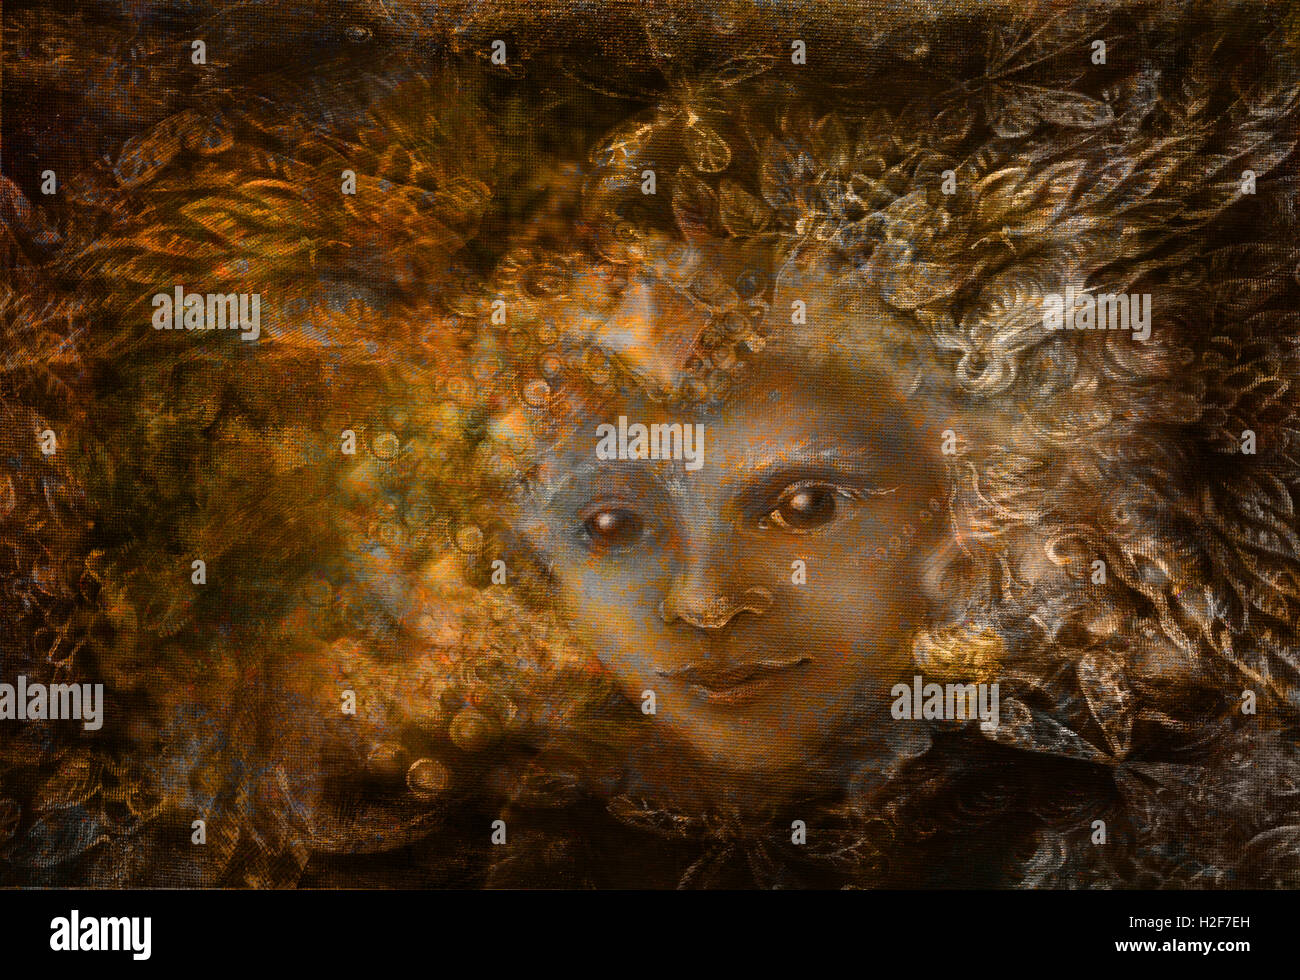 fairy being with crown of feathers, iluustration in brown sepia tones - Stock Image